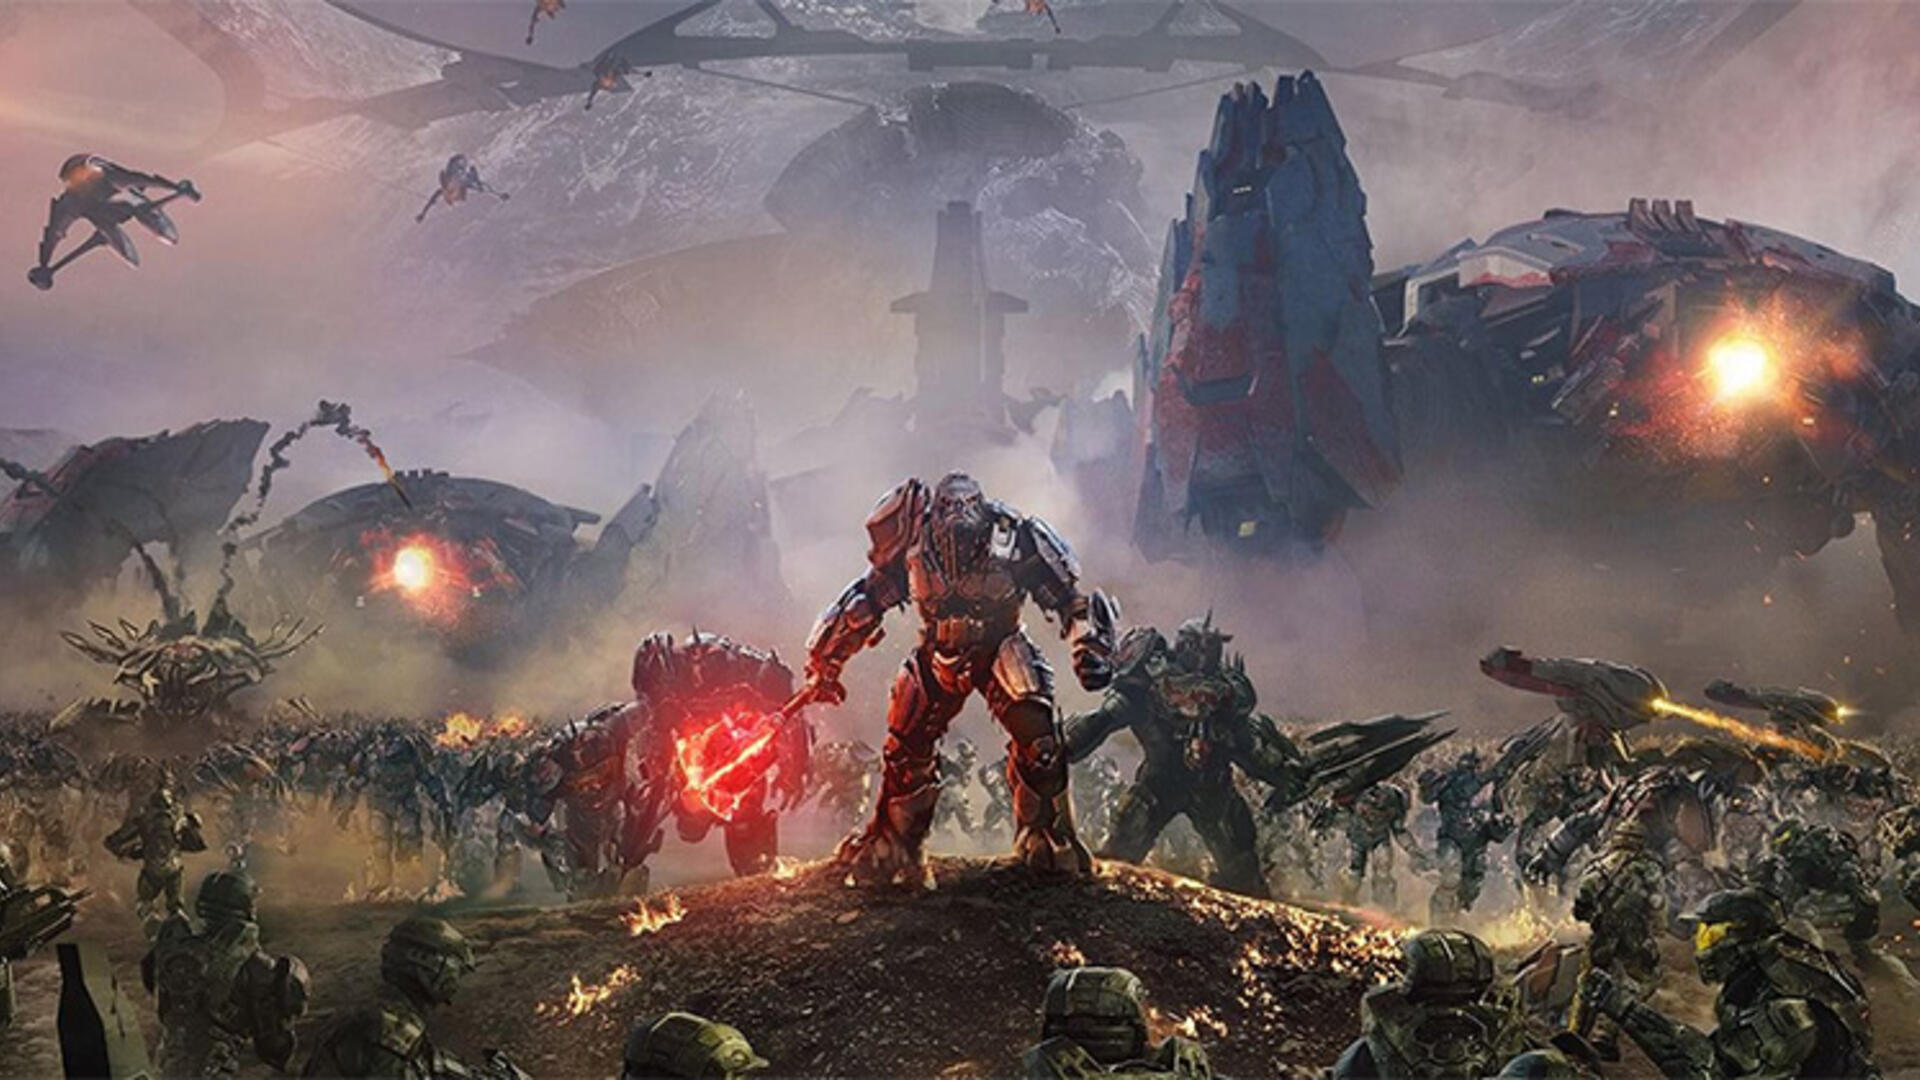 Halo Wars 2 Showcases Real-time Strategy's Biggest Advantage Over the MOBA Genre